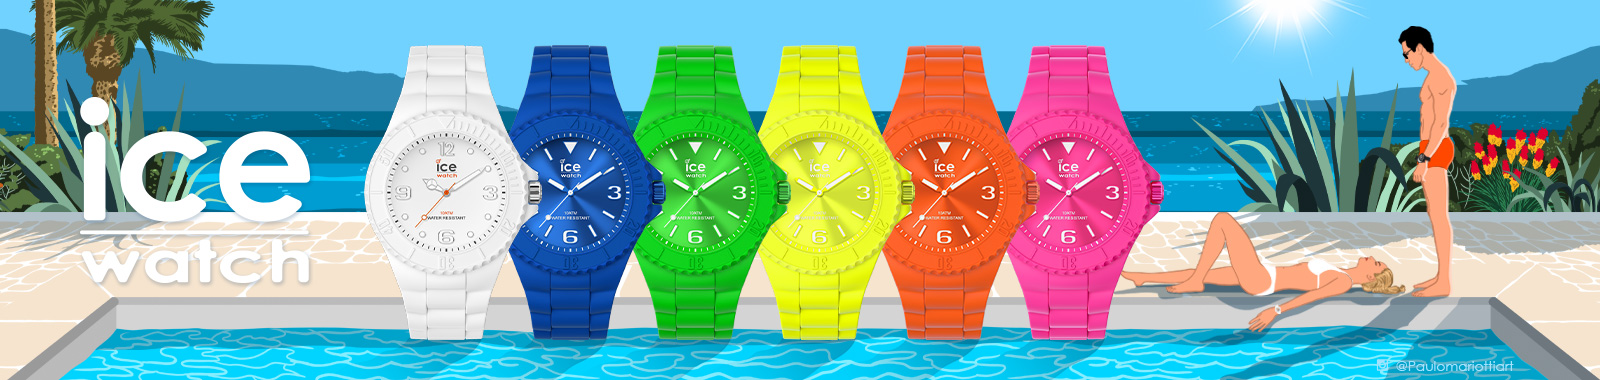 Ice_Watch_TopBanner_BLICKPUNKT-BANNER-GENERATION-SUMMER-1600px-380px